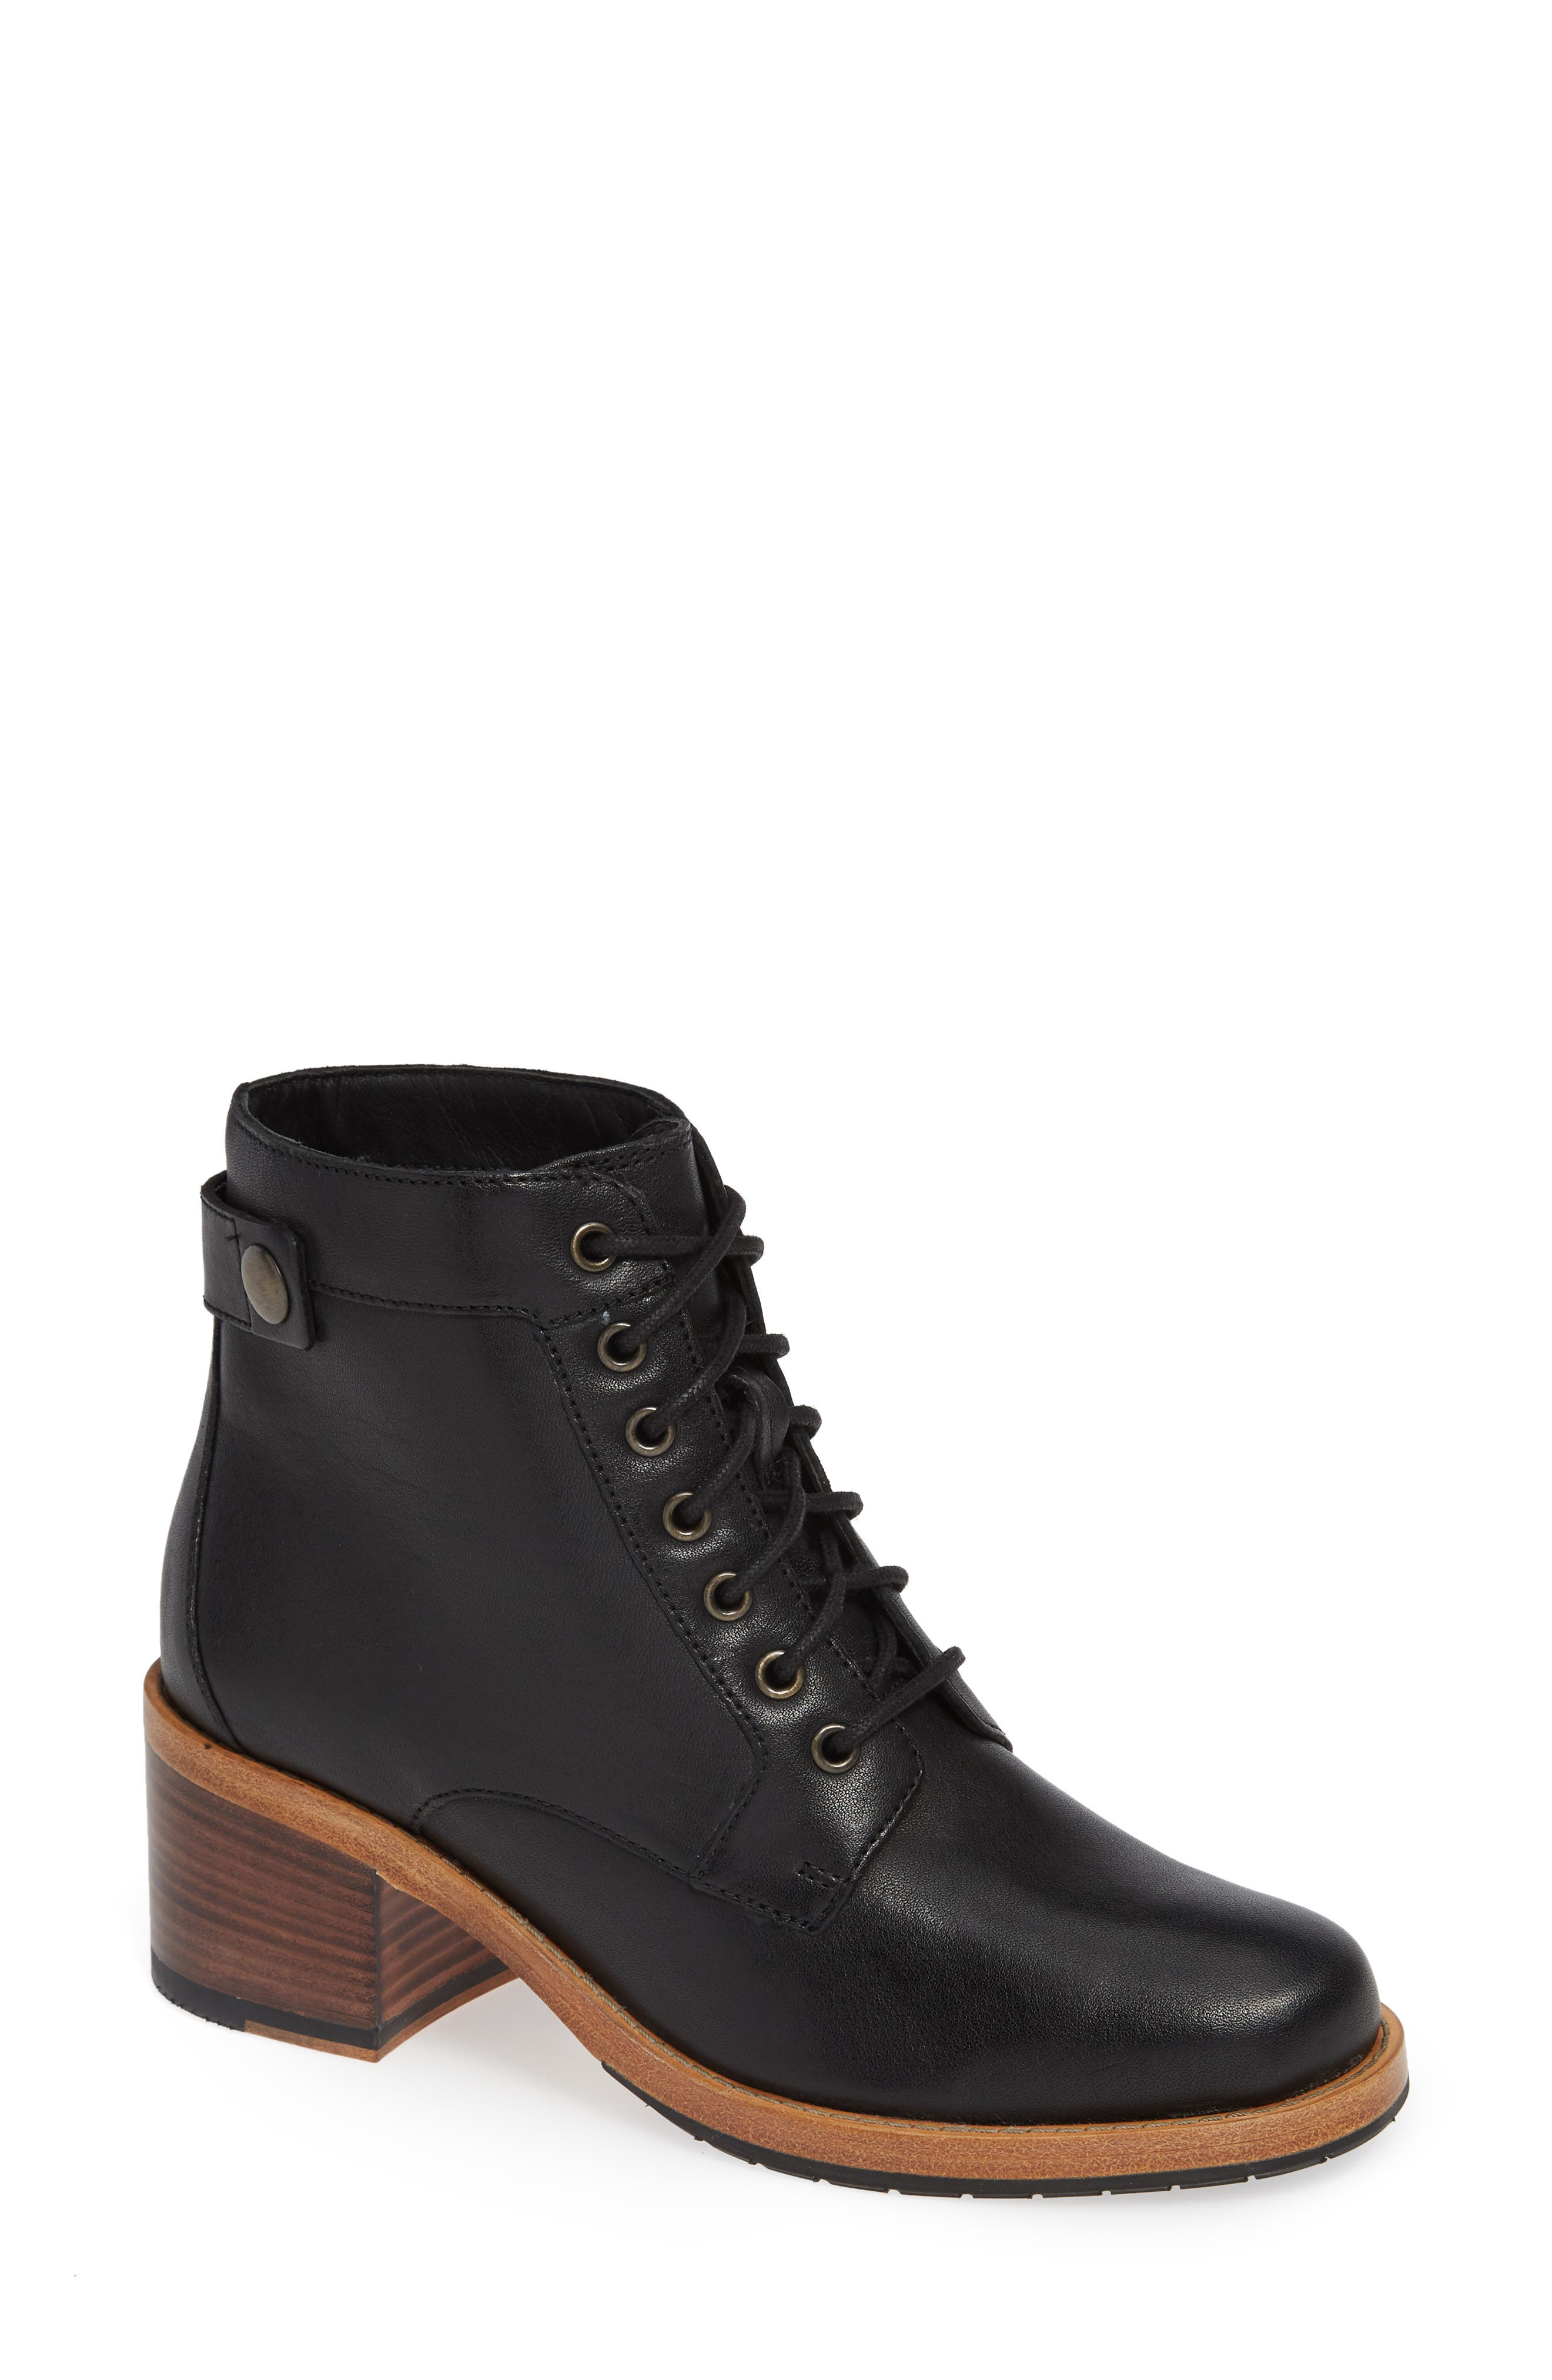 Clarkdale Tone Boot,                             Main thumbnail 1, color,                             BLACK LEATHER